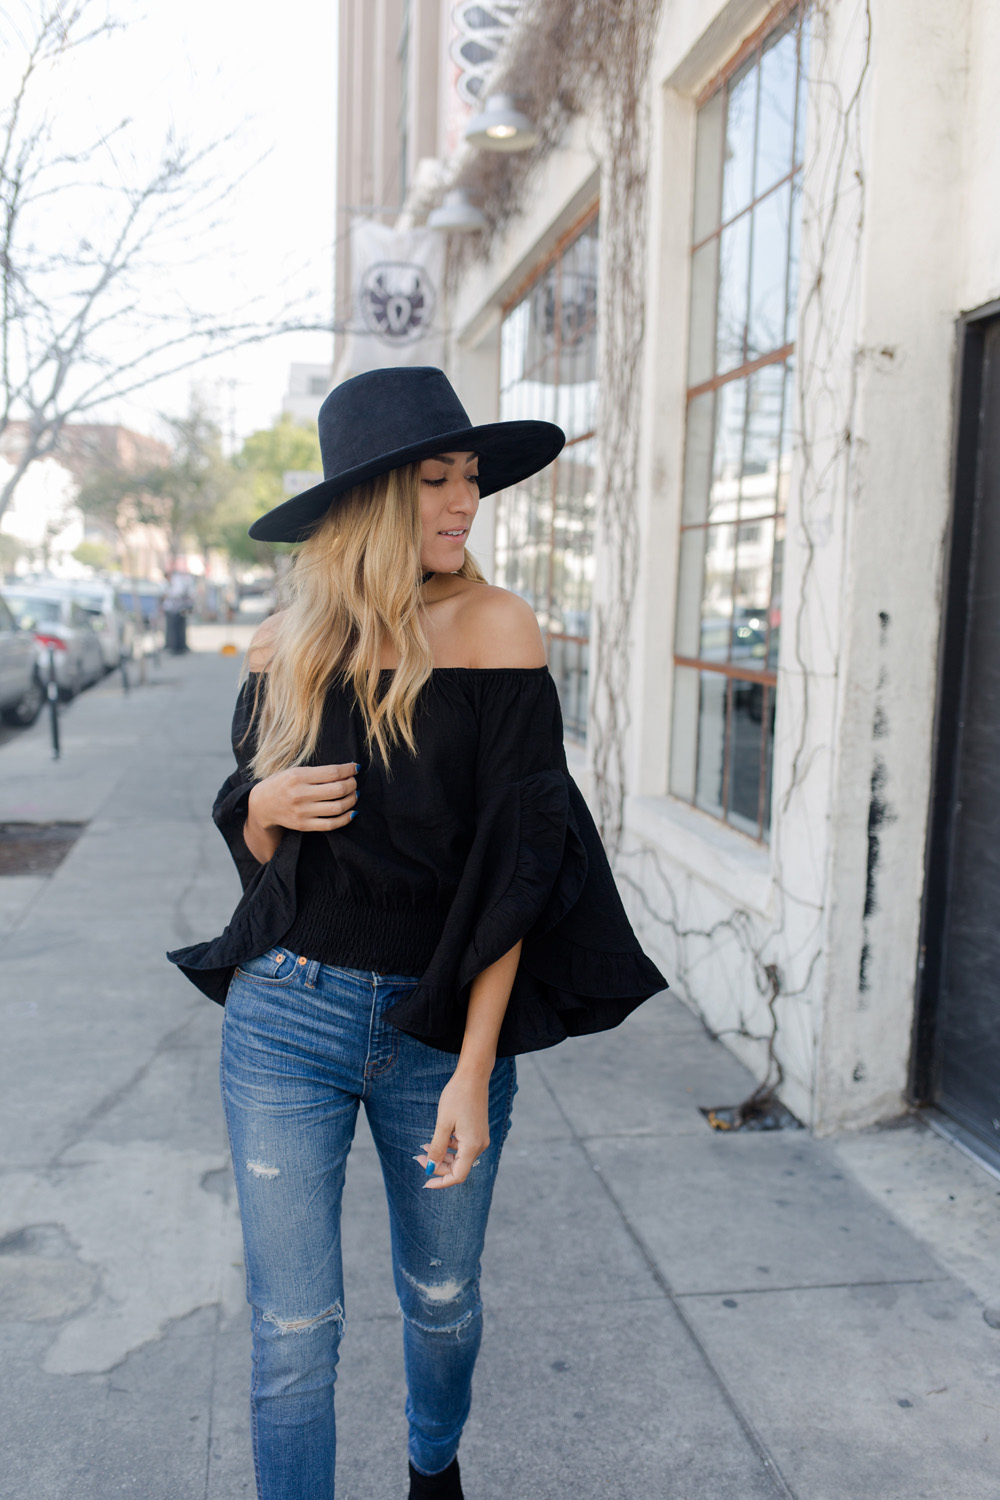 dietch pr, stefanie m mariee, tea and cup, melrodstyle, blogger, street style, beverly hills, la blogger, whittier blogger, latina blogger, hispanic blogger, mexican blogger, outfit, ootd, who what wear,